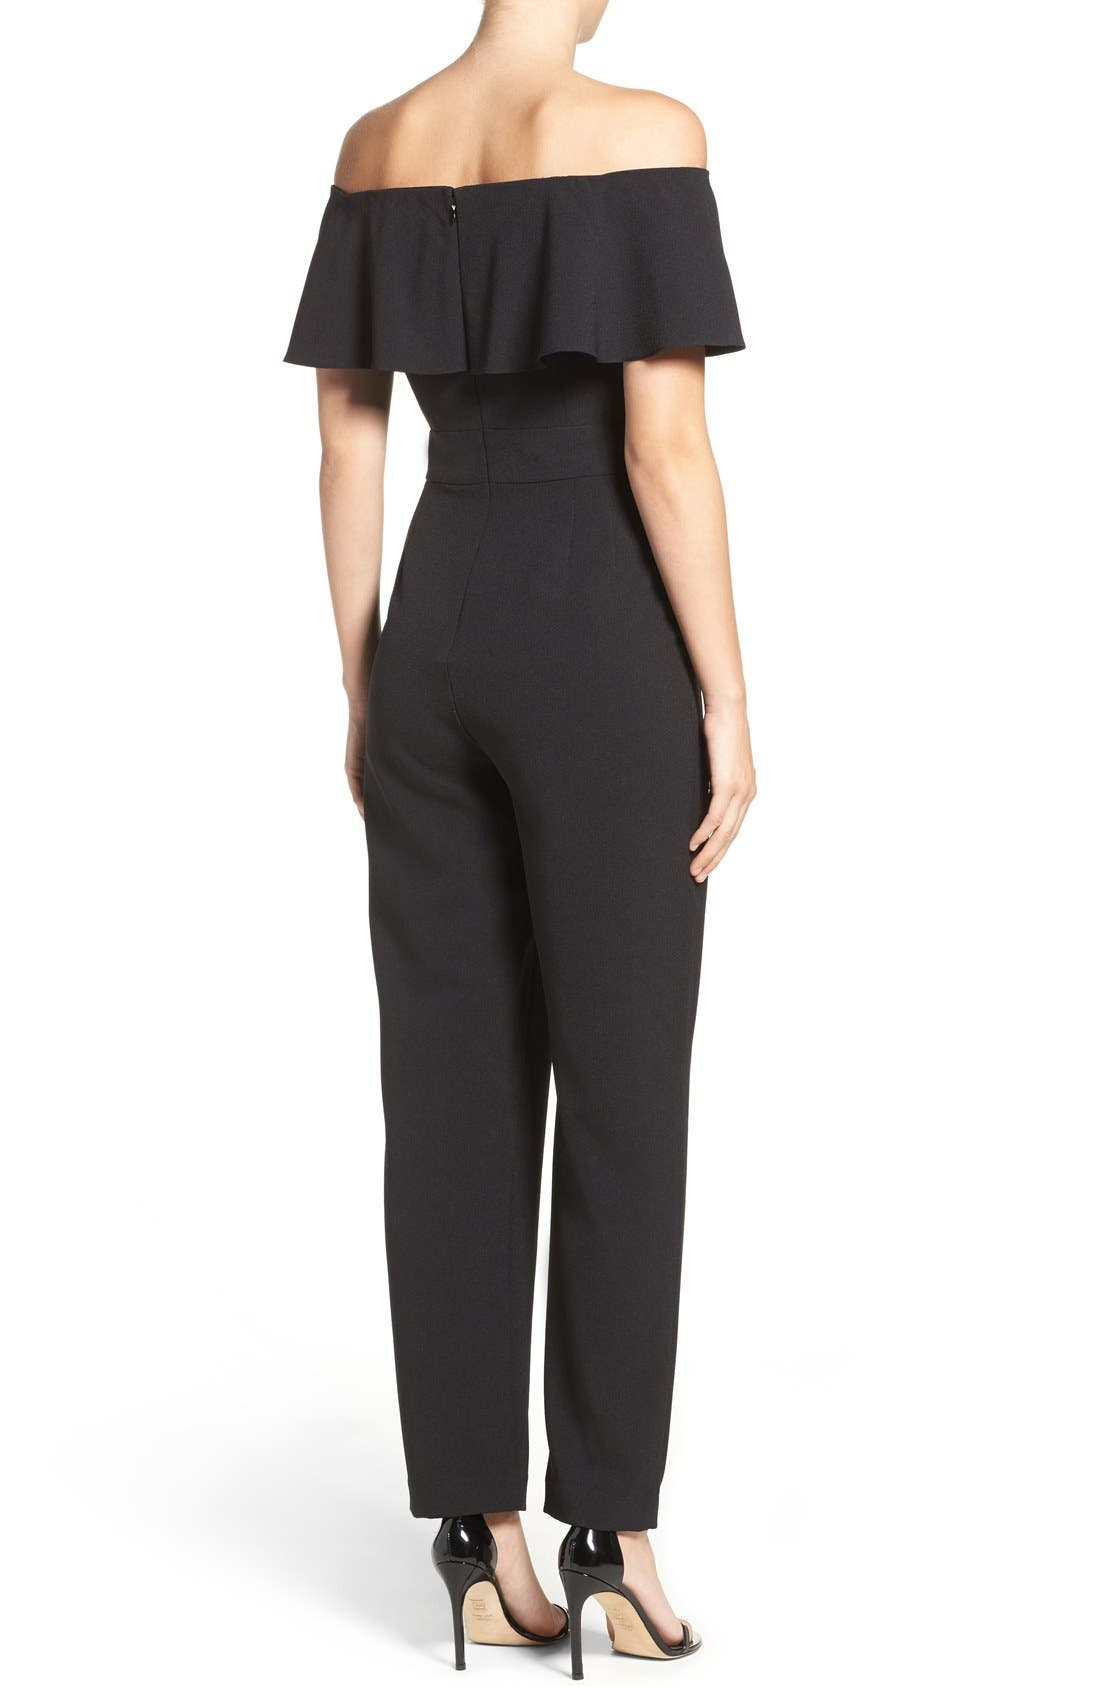 ELIZA J,                             Ruffle Jumpsuit,                             Alternate thumbnail 8, color,                             001